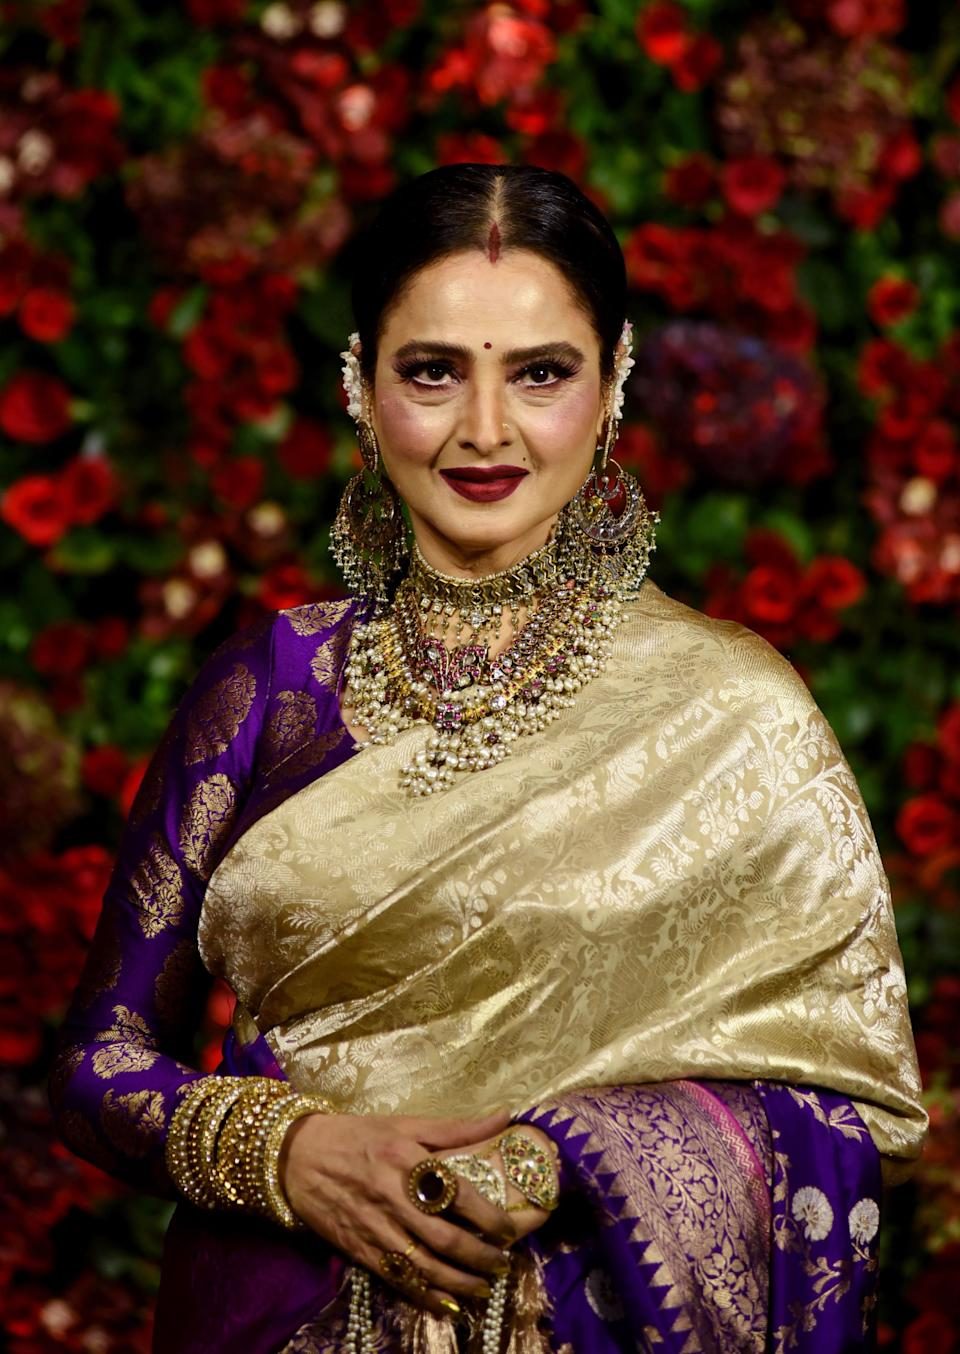 Indian Bollywood actress Rekha poses for a picture during the wedding reception party of actors Ranveer Singh and Deepika Padukone in Mumbai late on December 1, 2018. (Photo by Sujit Jaiswal / AFP) (Photo by SUJIT JAISWAL/AFP via Getty Images)